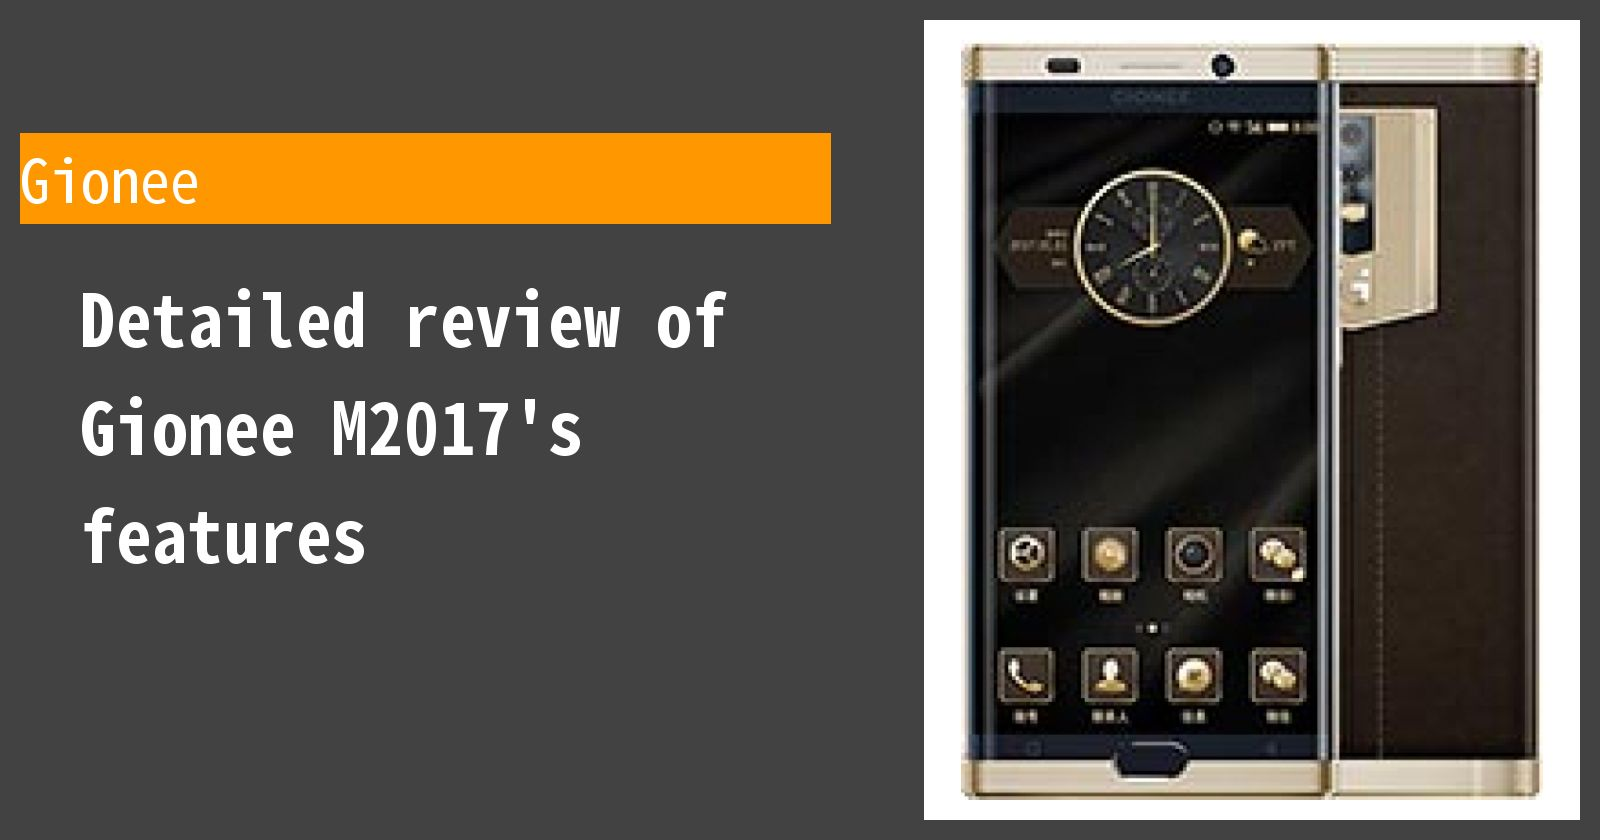 Detailed review of Gionee M2017's features